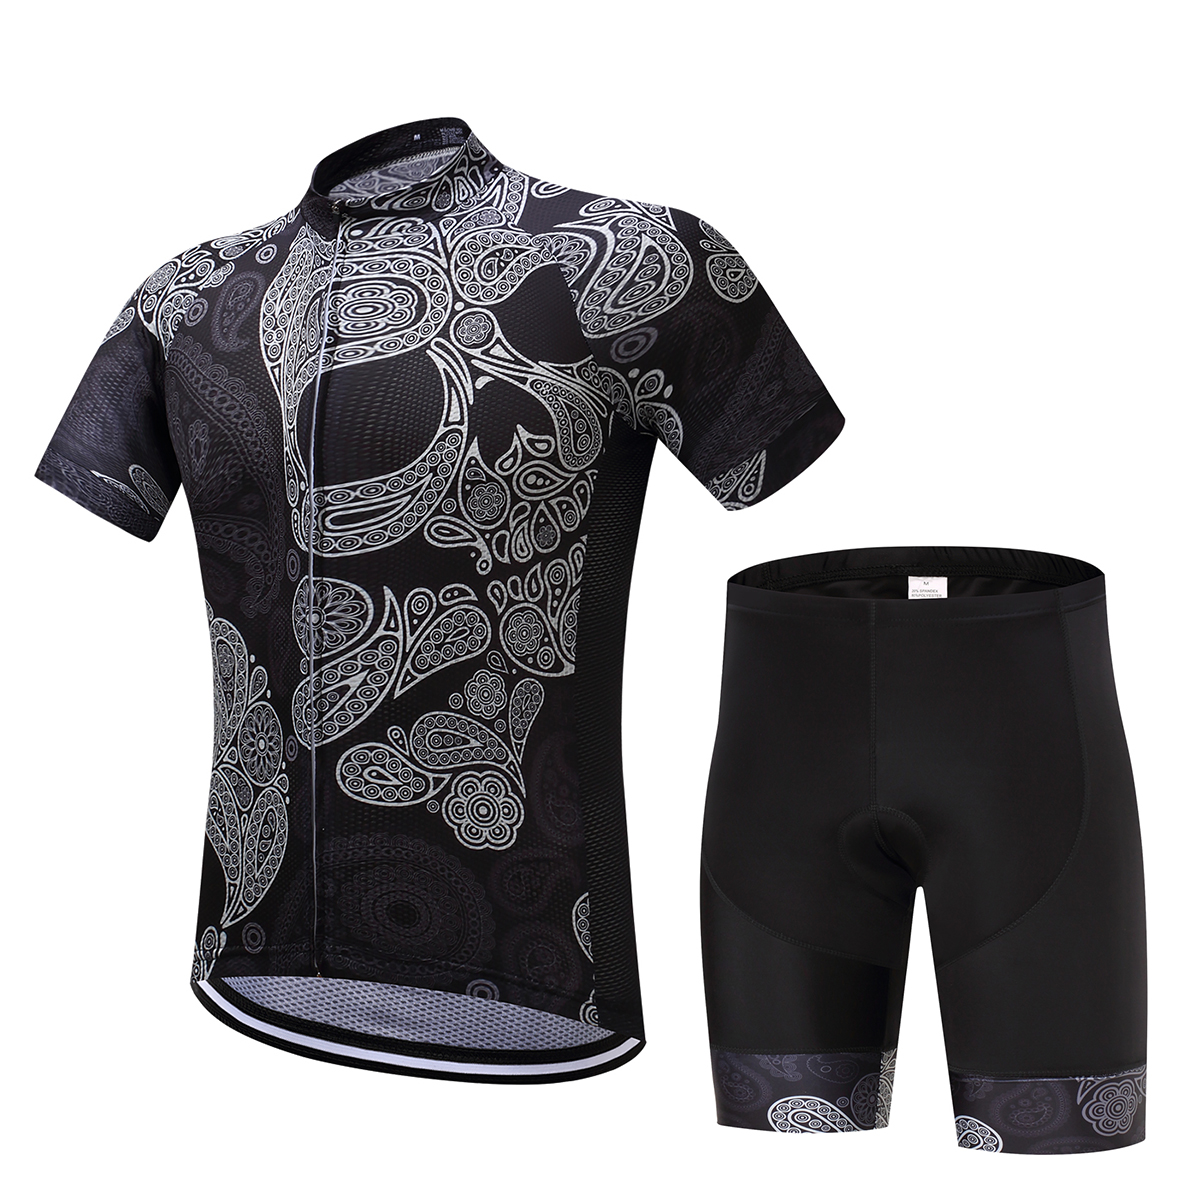 SUREA 17 summer short-sleeved Jersey suits for men and women spring and summer bicycle short-sleeved shorts suit outdoor